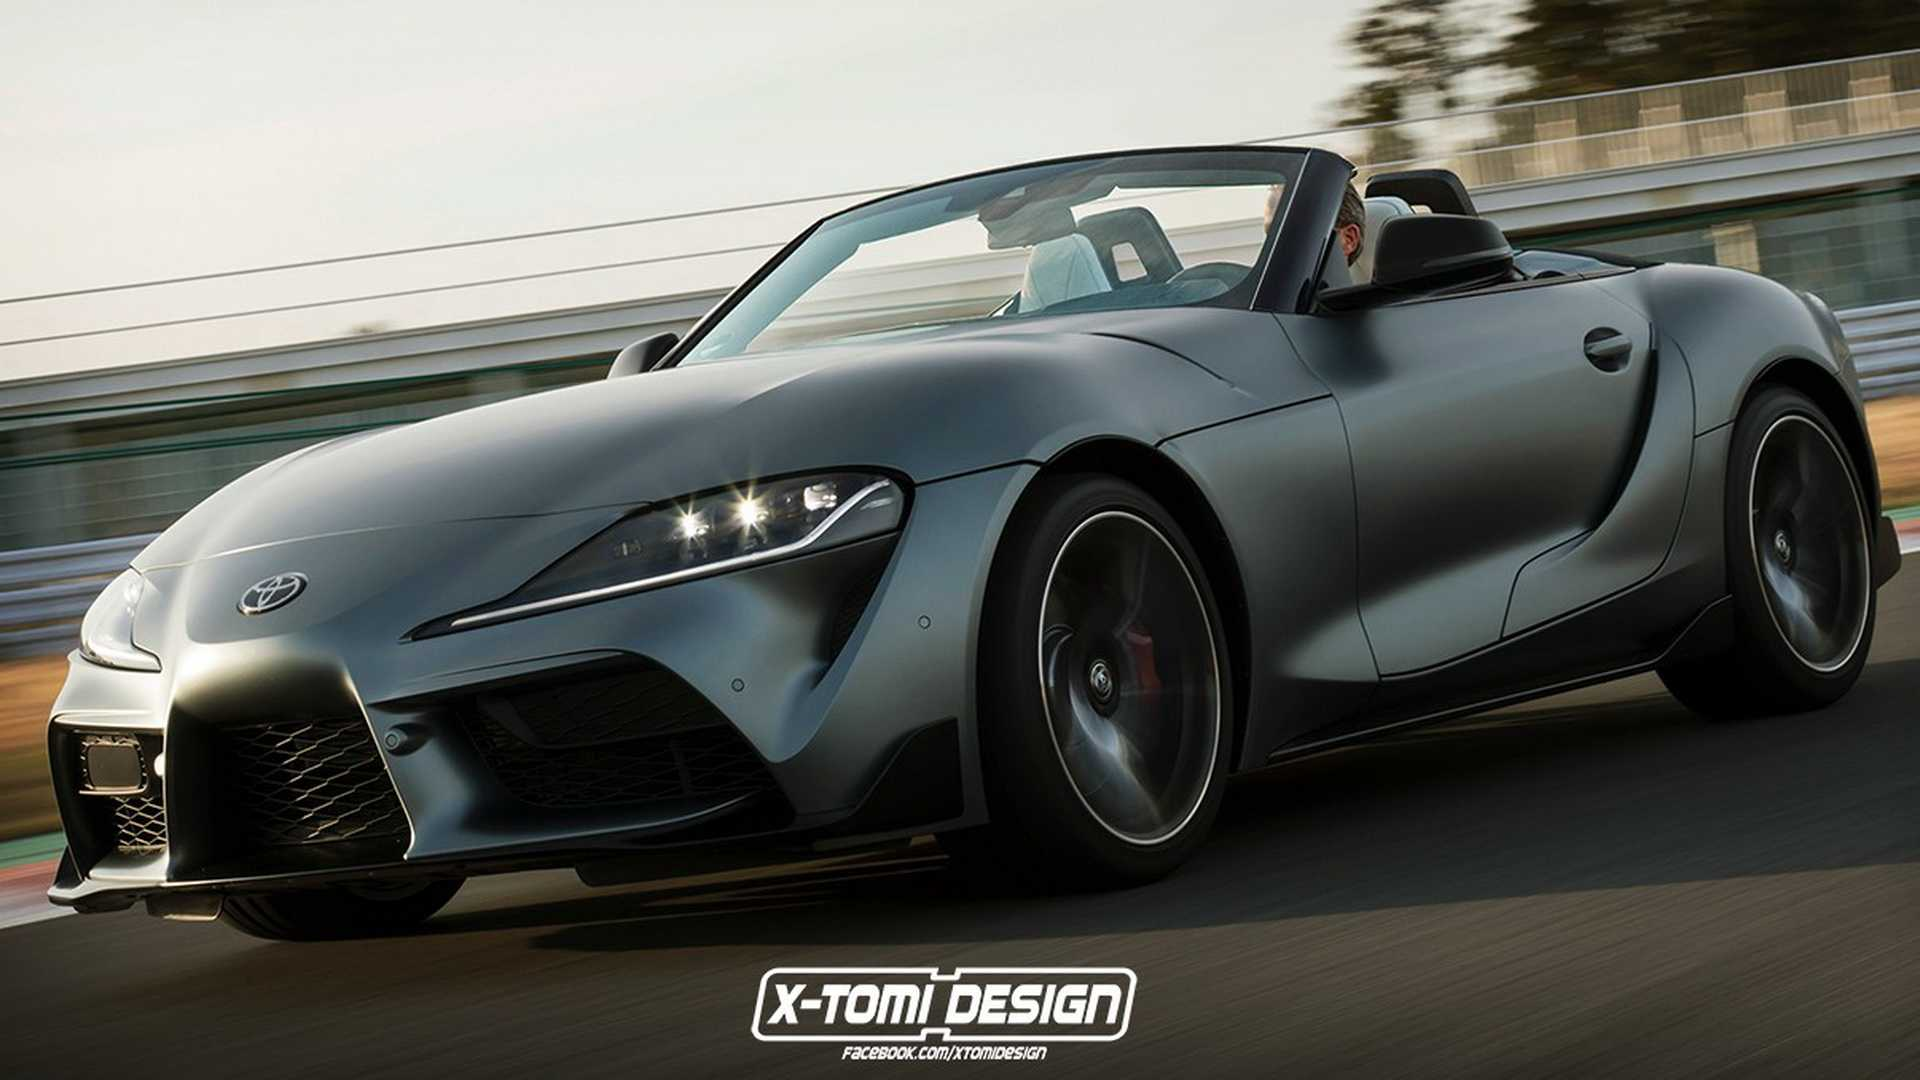 37f36f7755 Toyota Supra Cabrio Rendered As Japan's BMW Z4